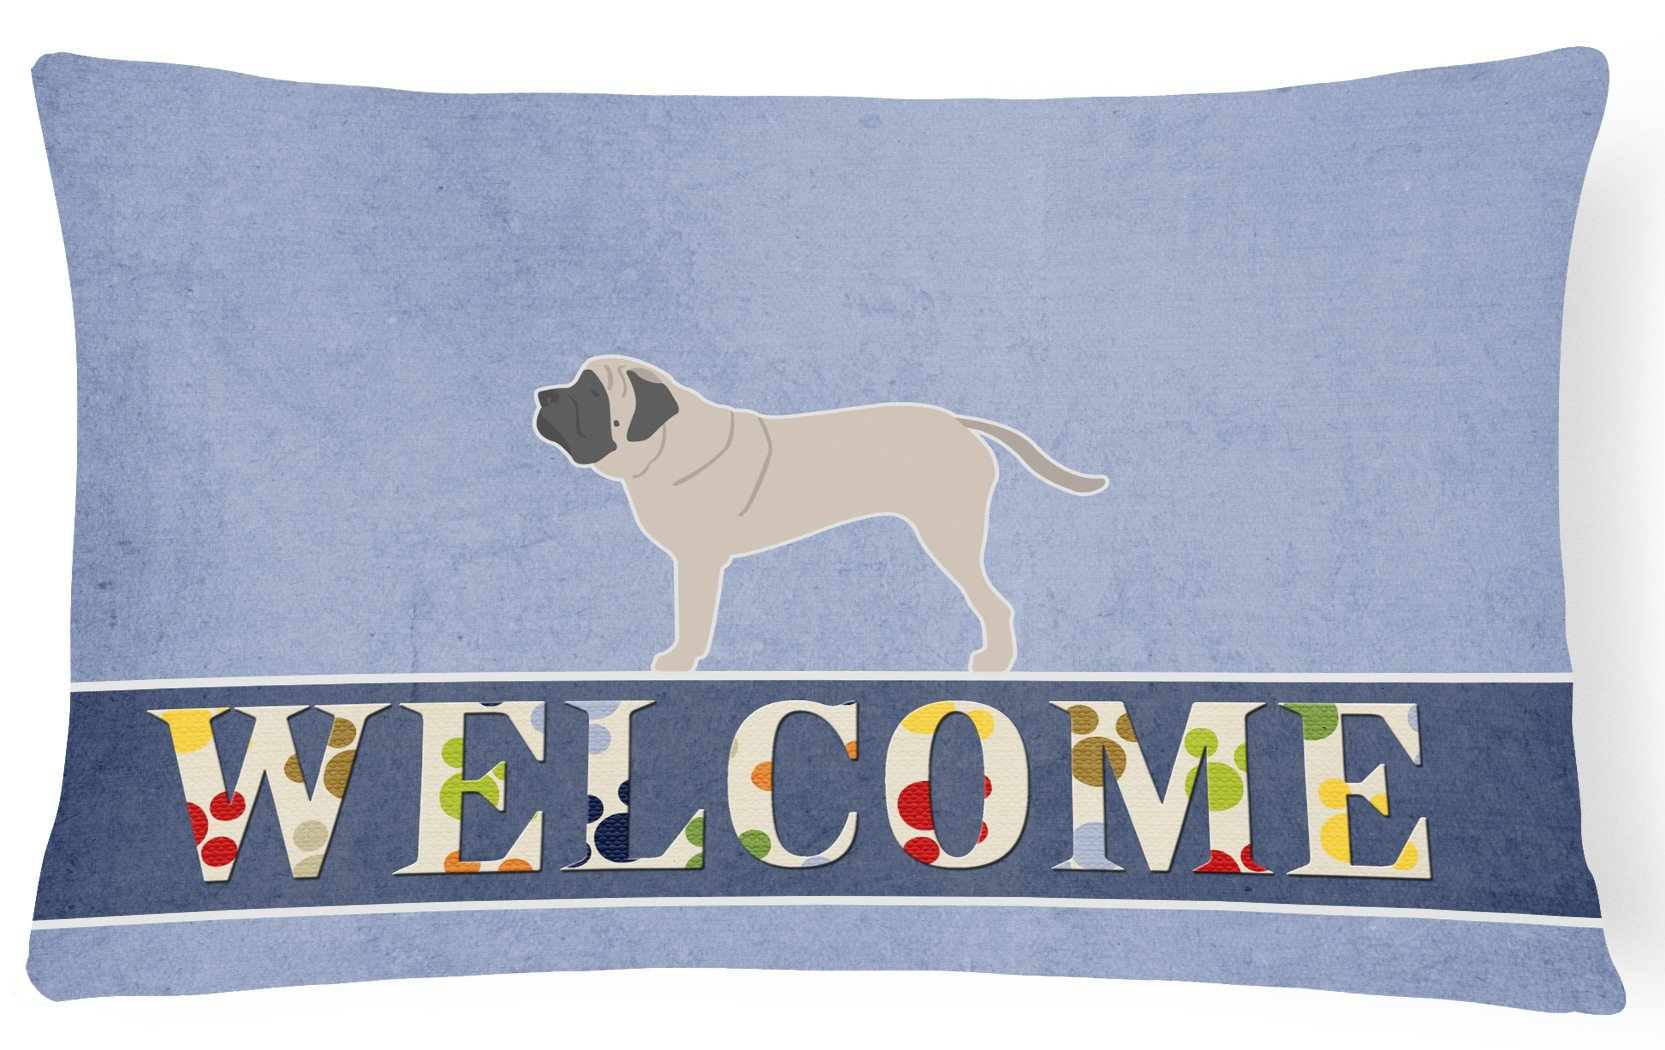 English Mastiff Welcome Canvas Fabric Decorative Pillow BB5560PW1216 by Caroline's Treasures